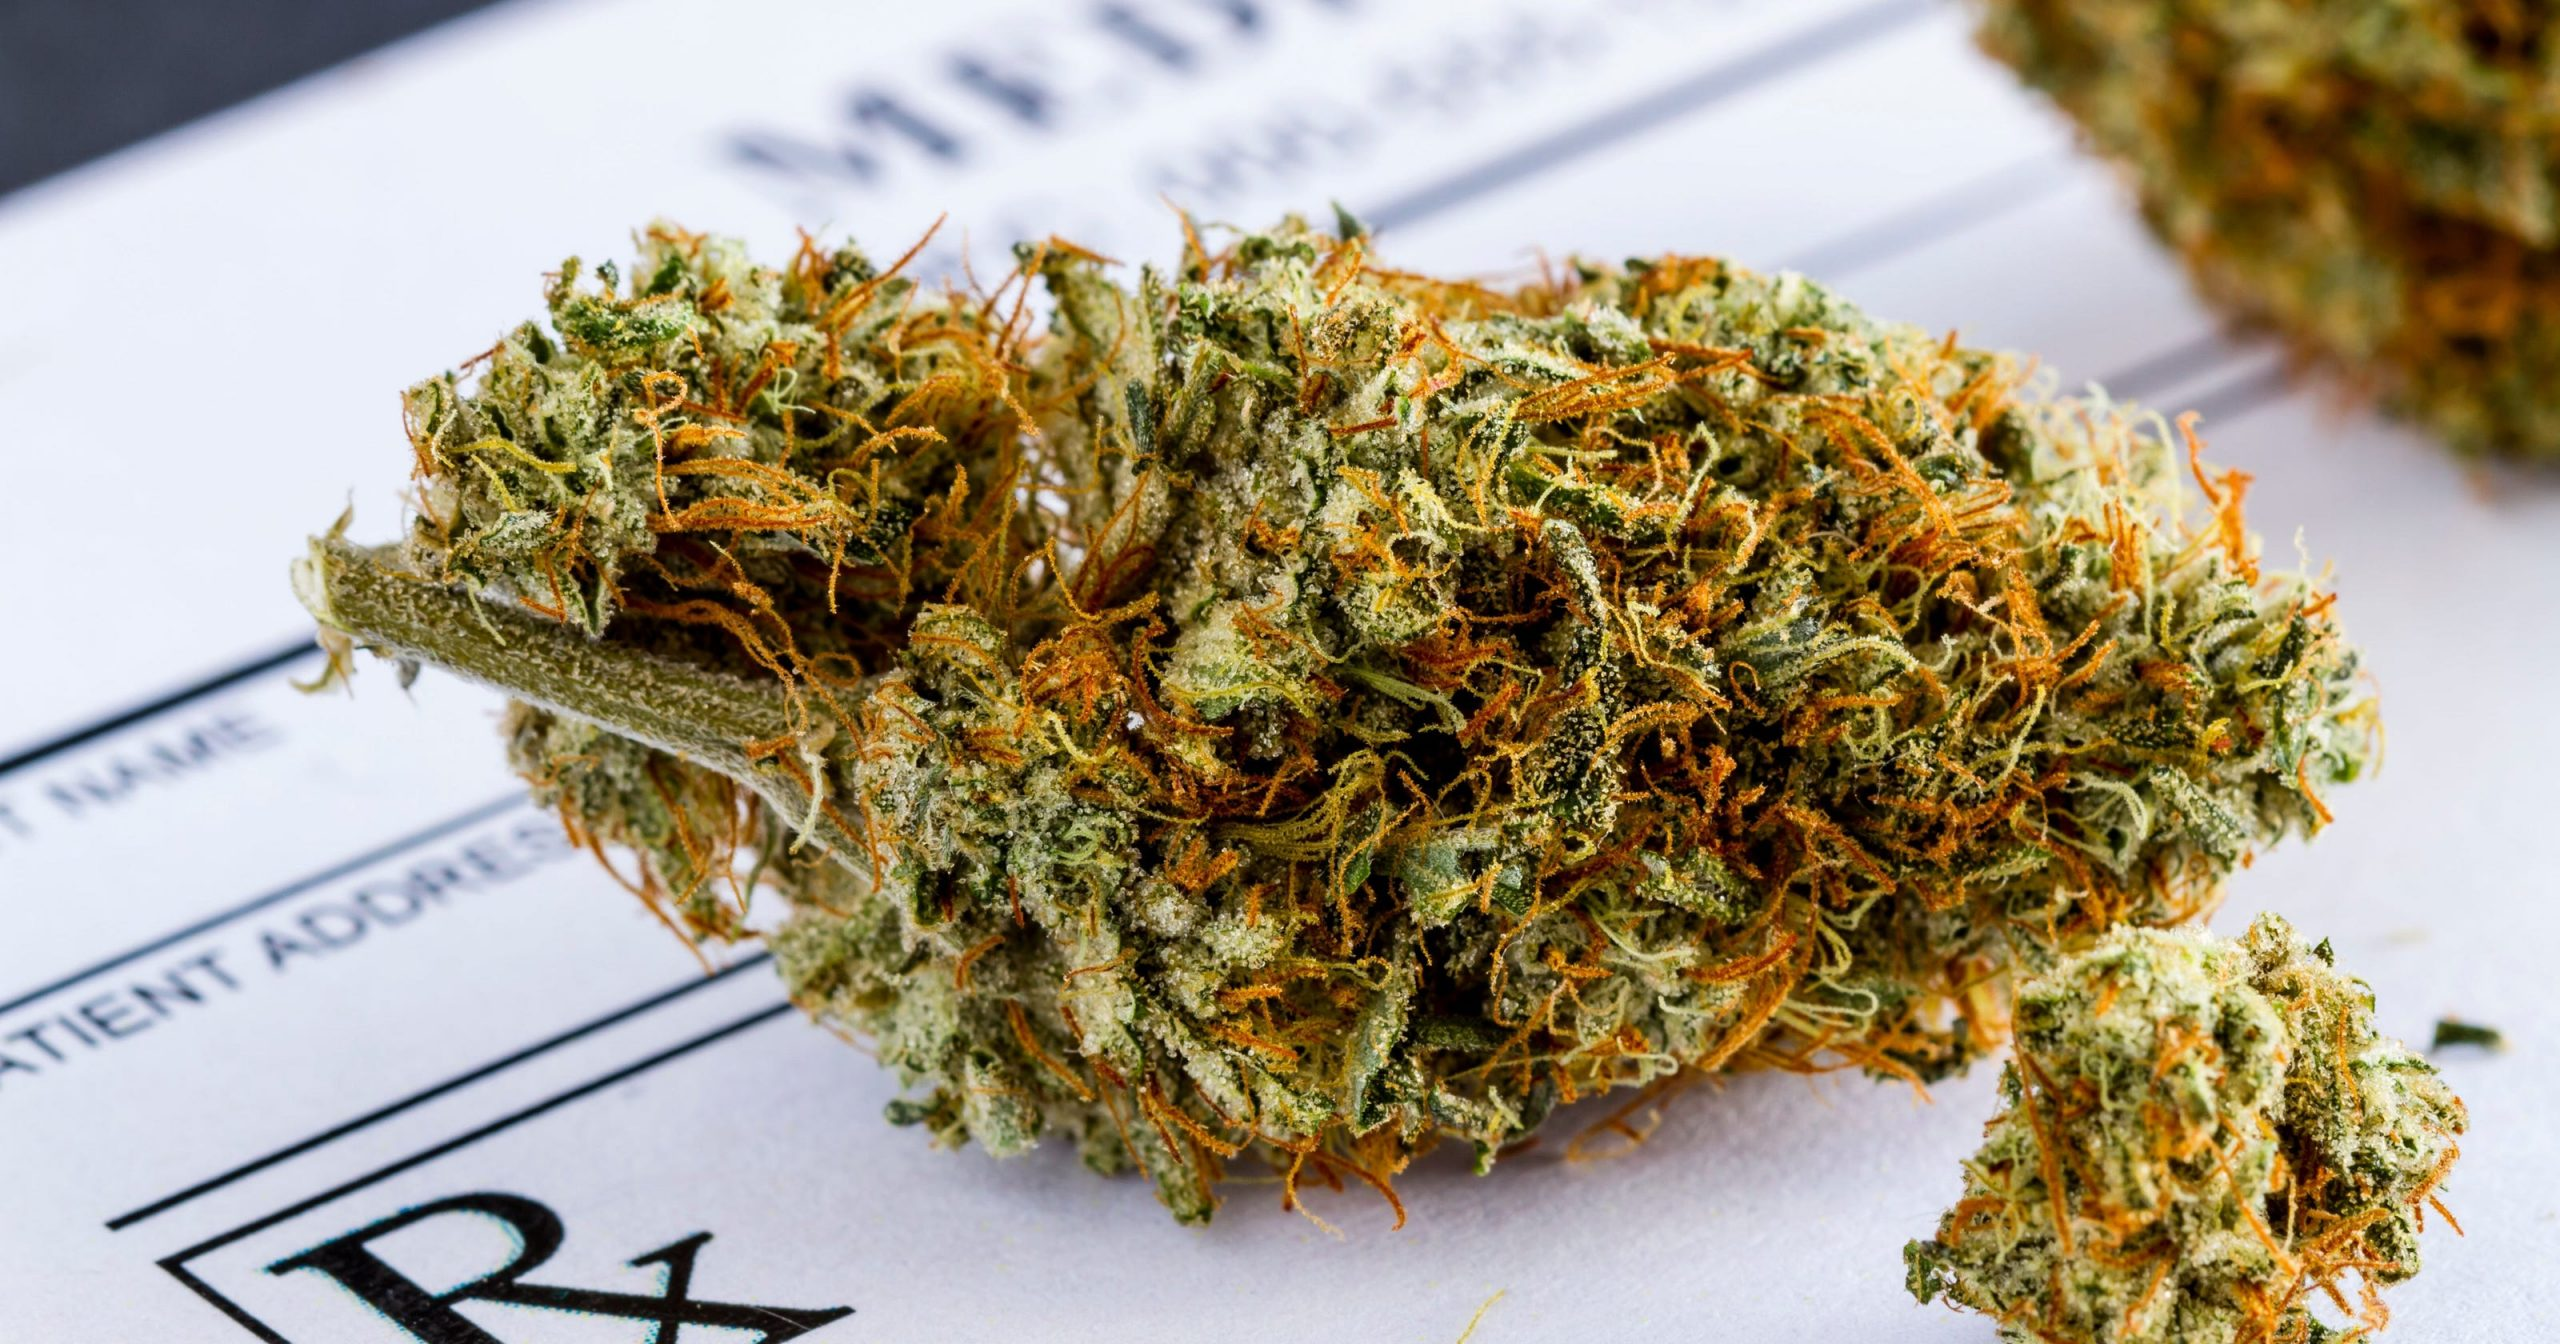 Main types of marijuana you should know about